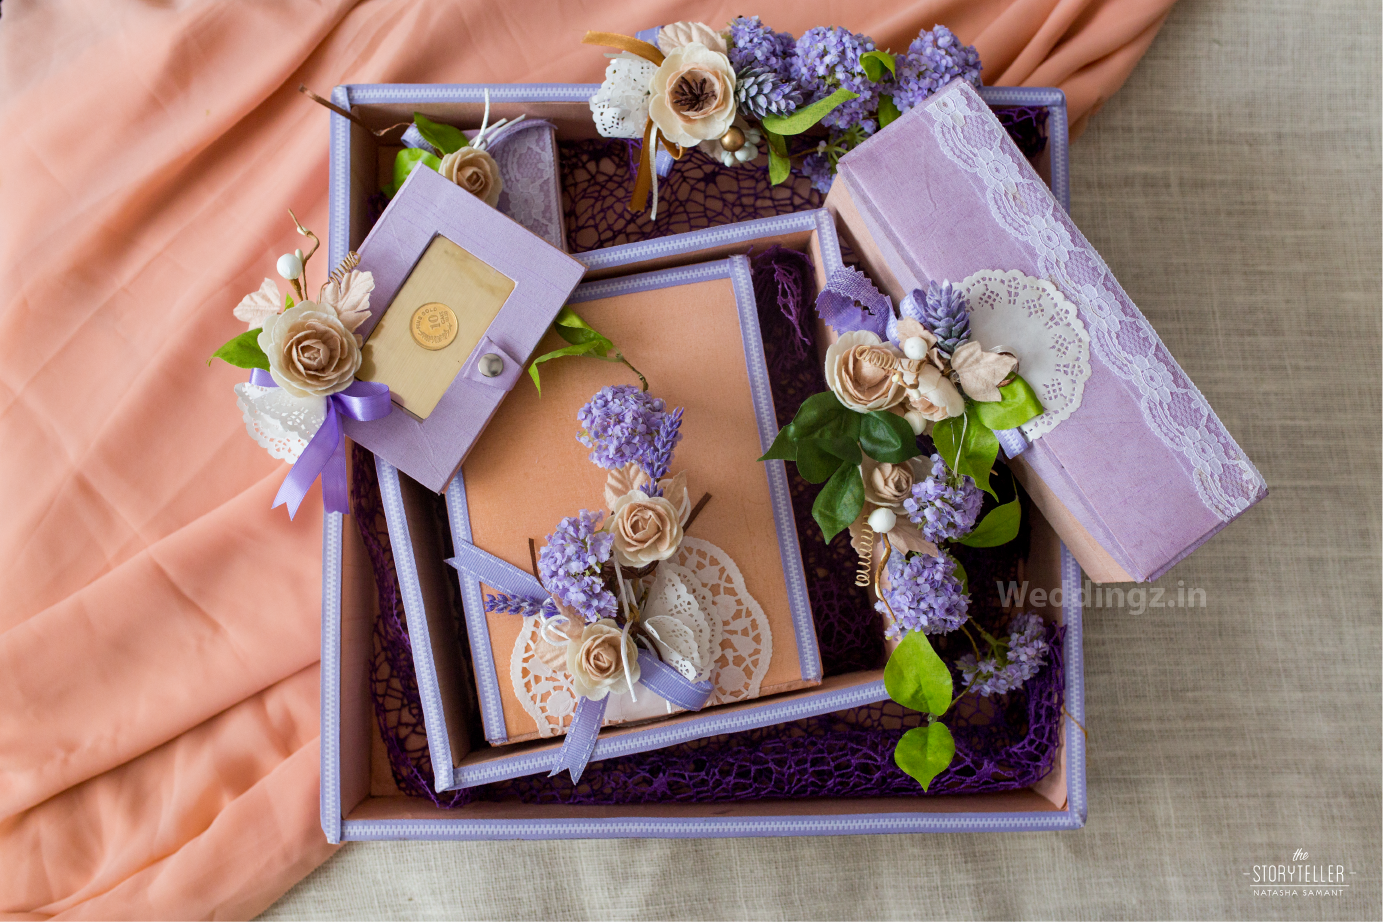 Wedding Gifts Boxes: 7 Luxury Trousseau Gifting Ideas For Your Wedding Gifts